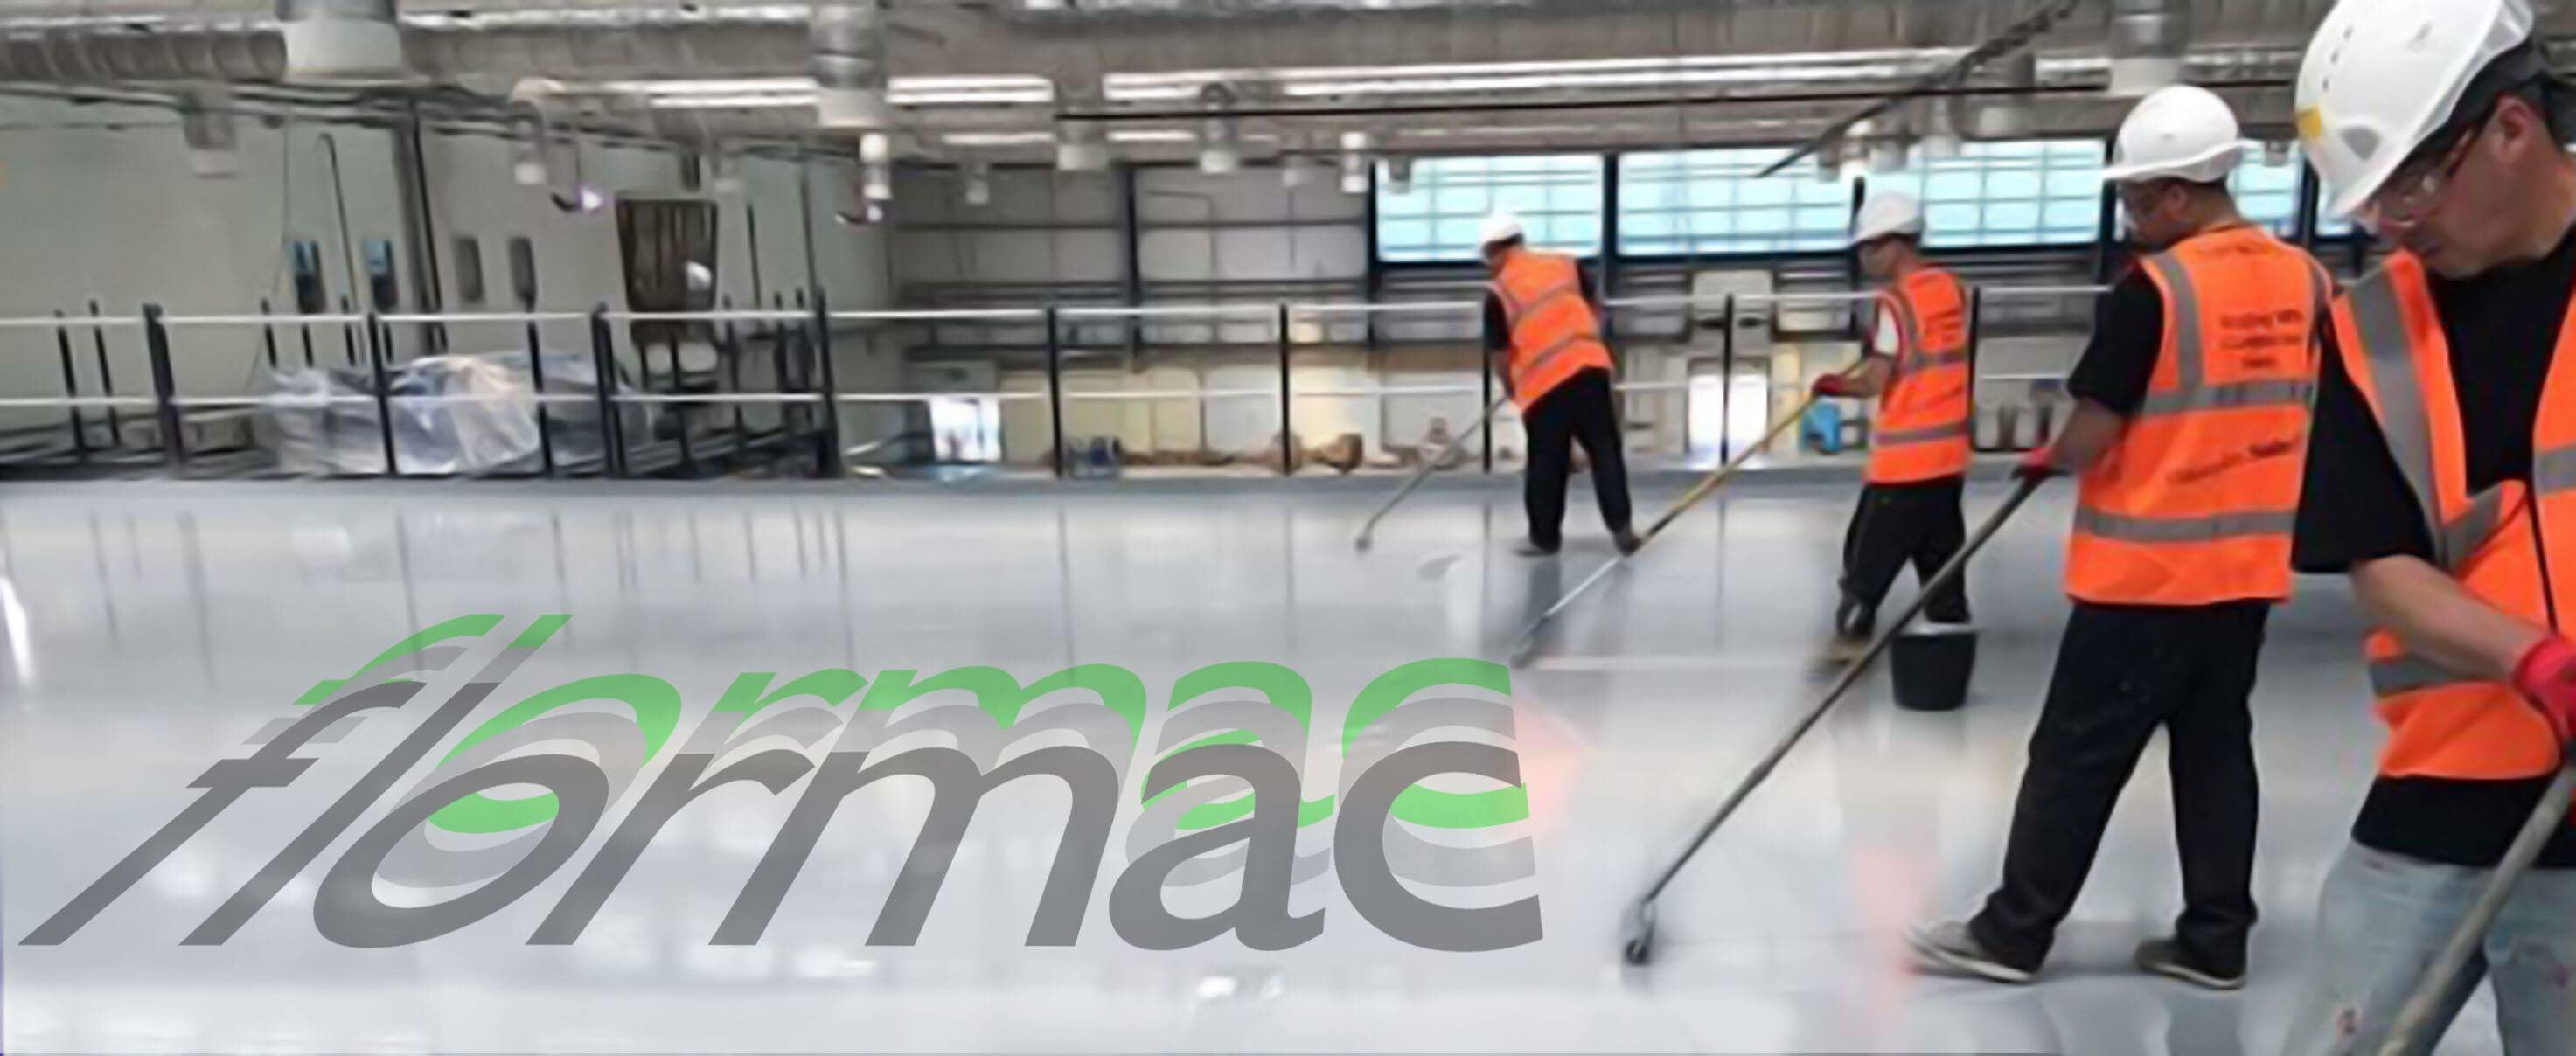 About Flormac Resin Floor Specialist